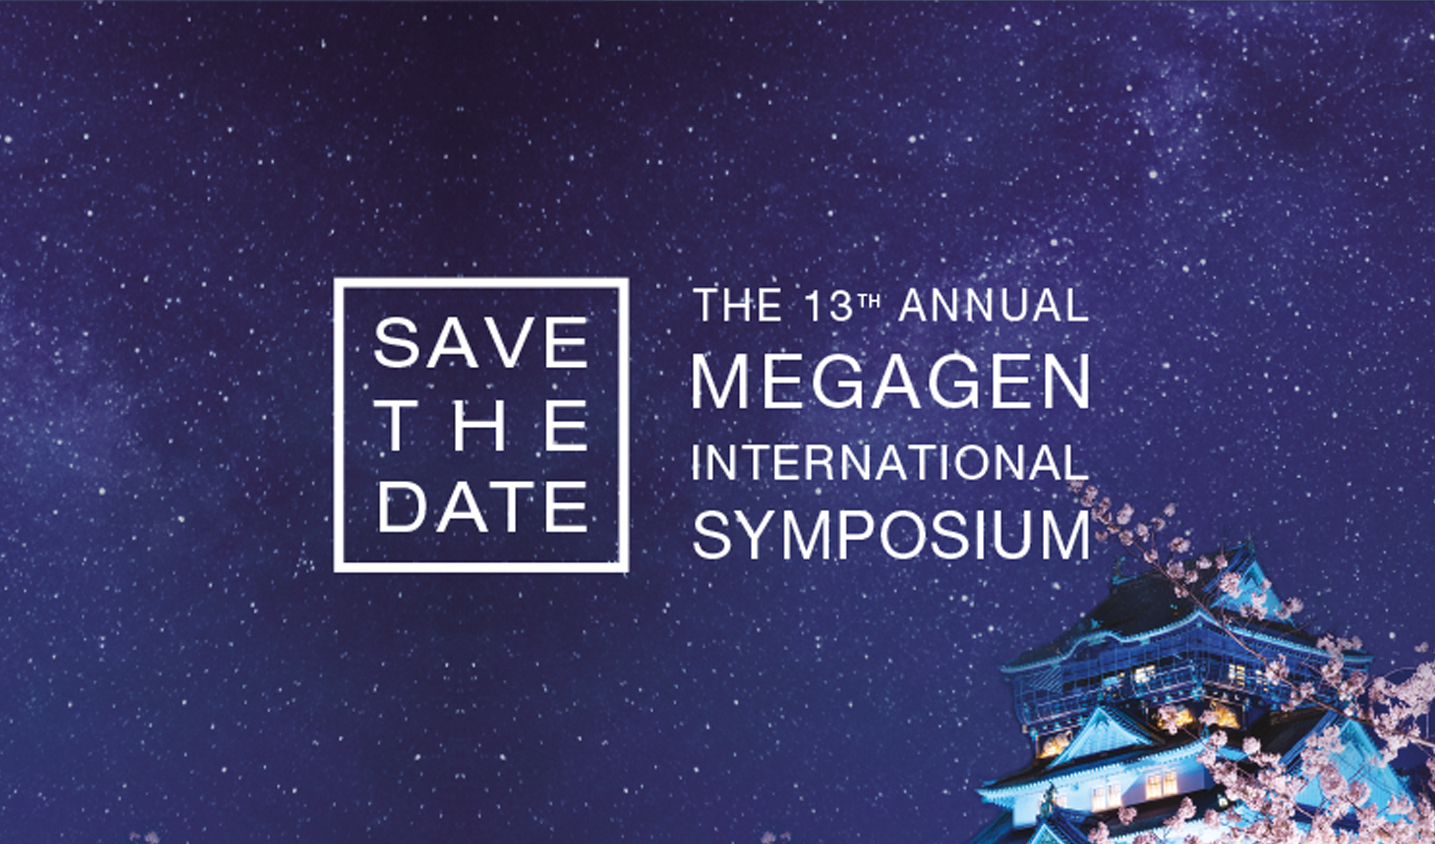 symposium-2017-megagen-japan-tokio